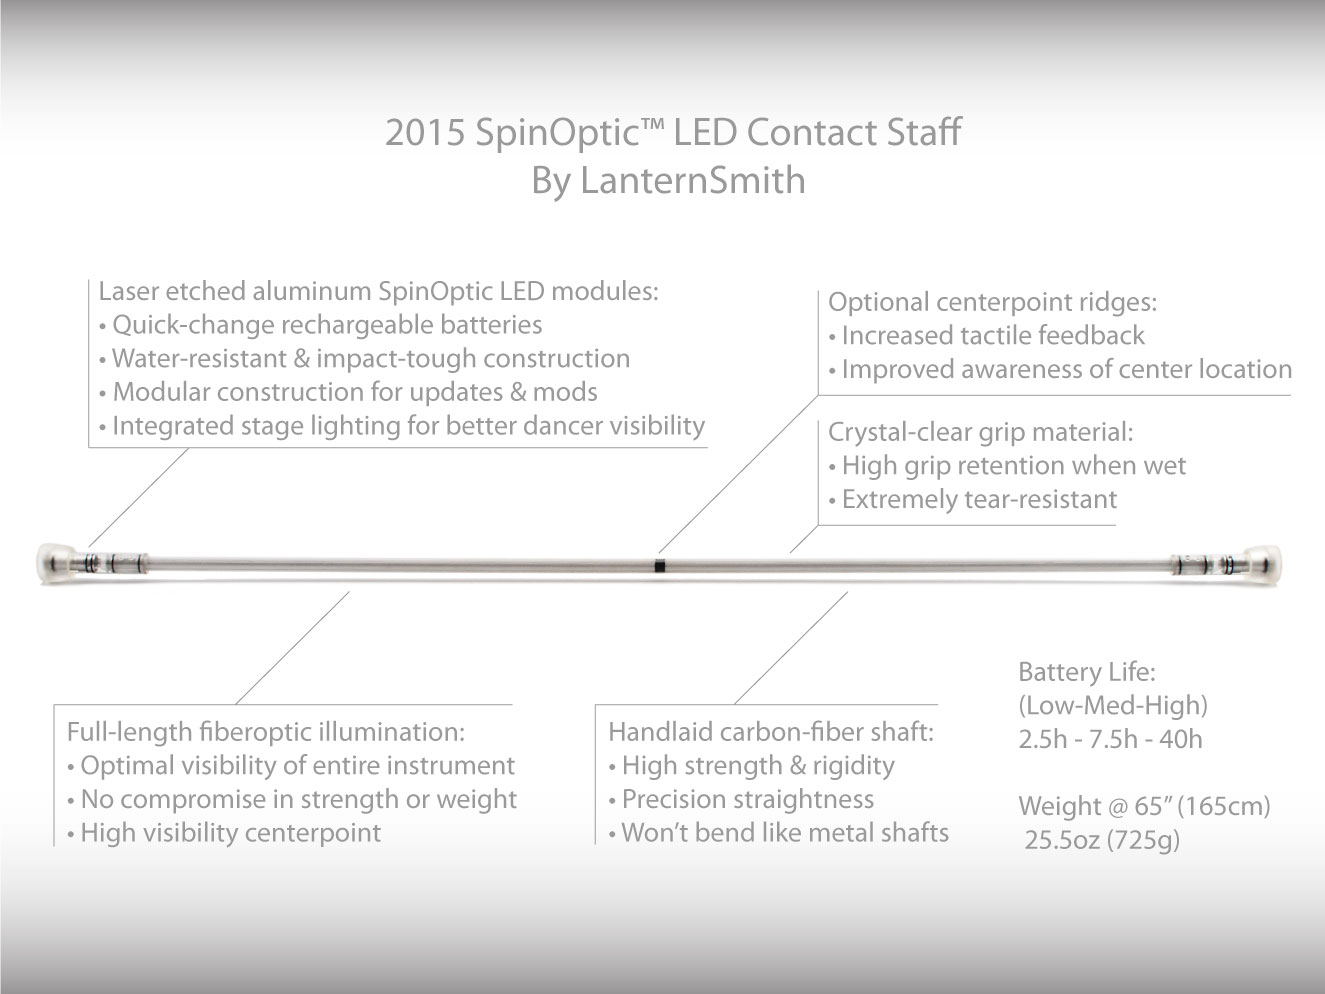 SpinOptic Contact Staff Infographic